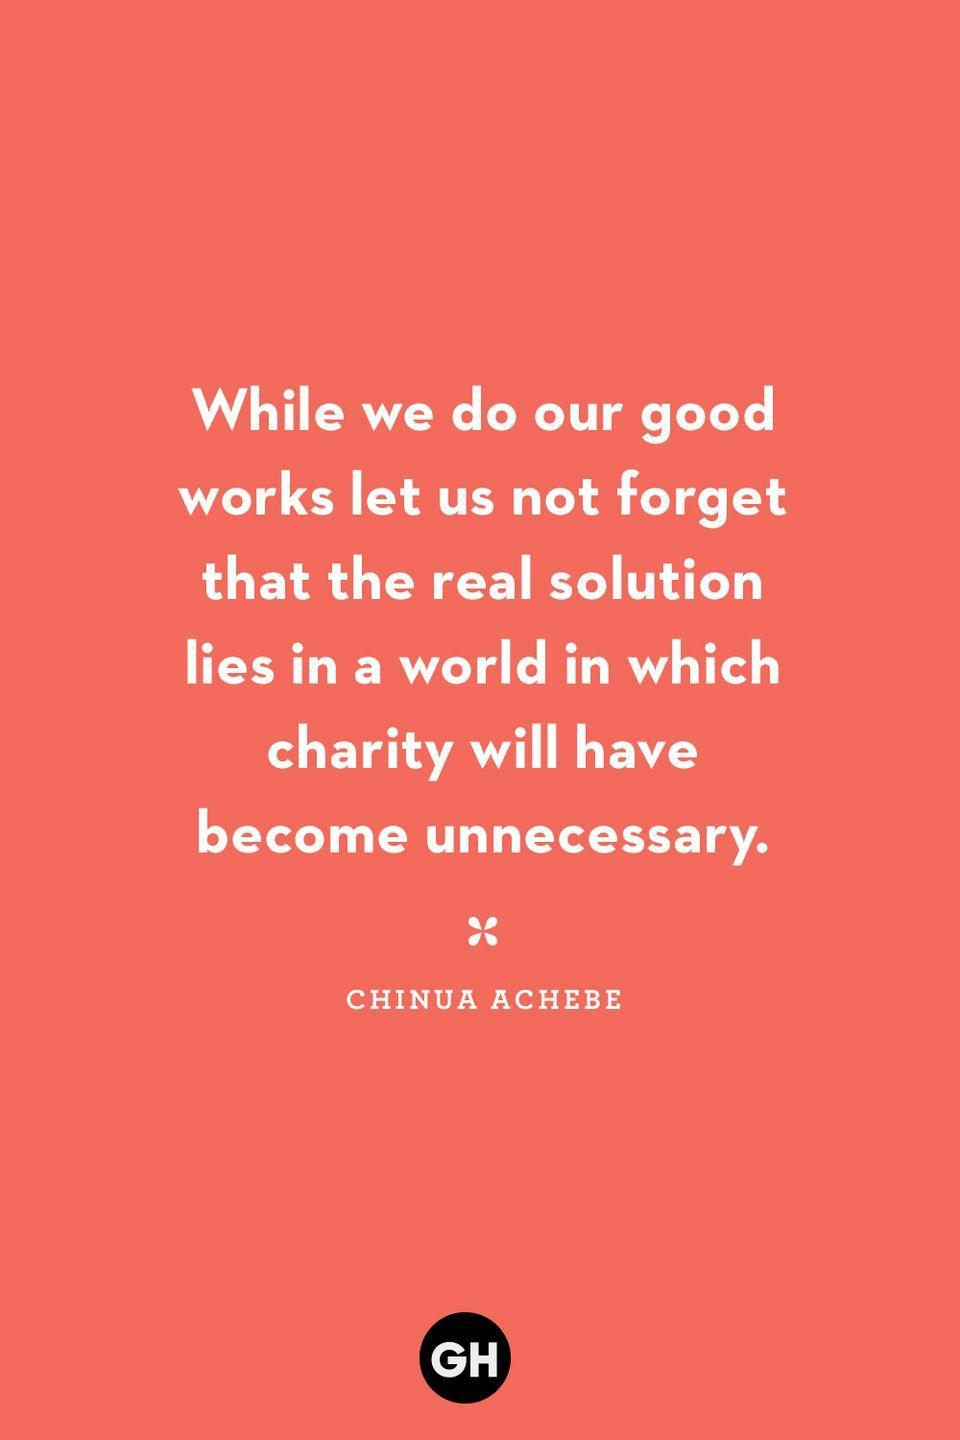 <p>While we do our good works let us not forget that the real solution lies in a world in which charity will have become unnecessary.</p>